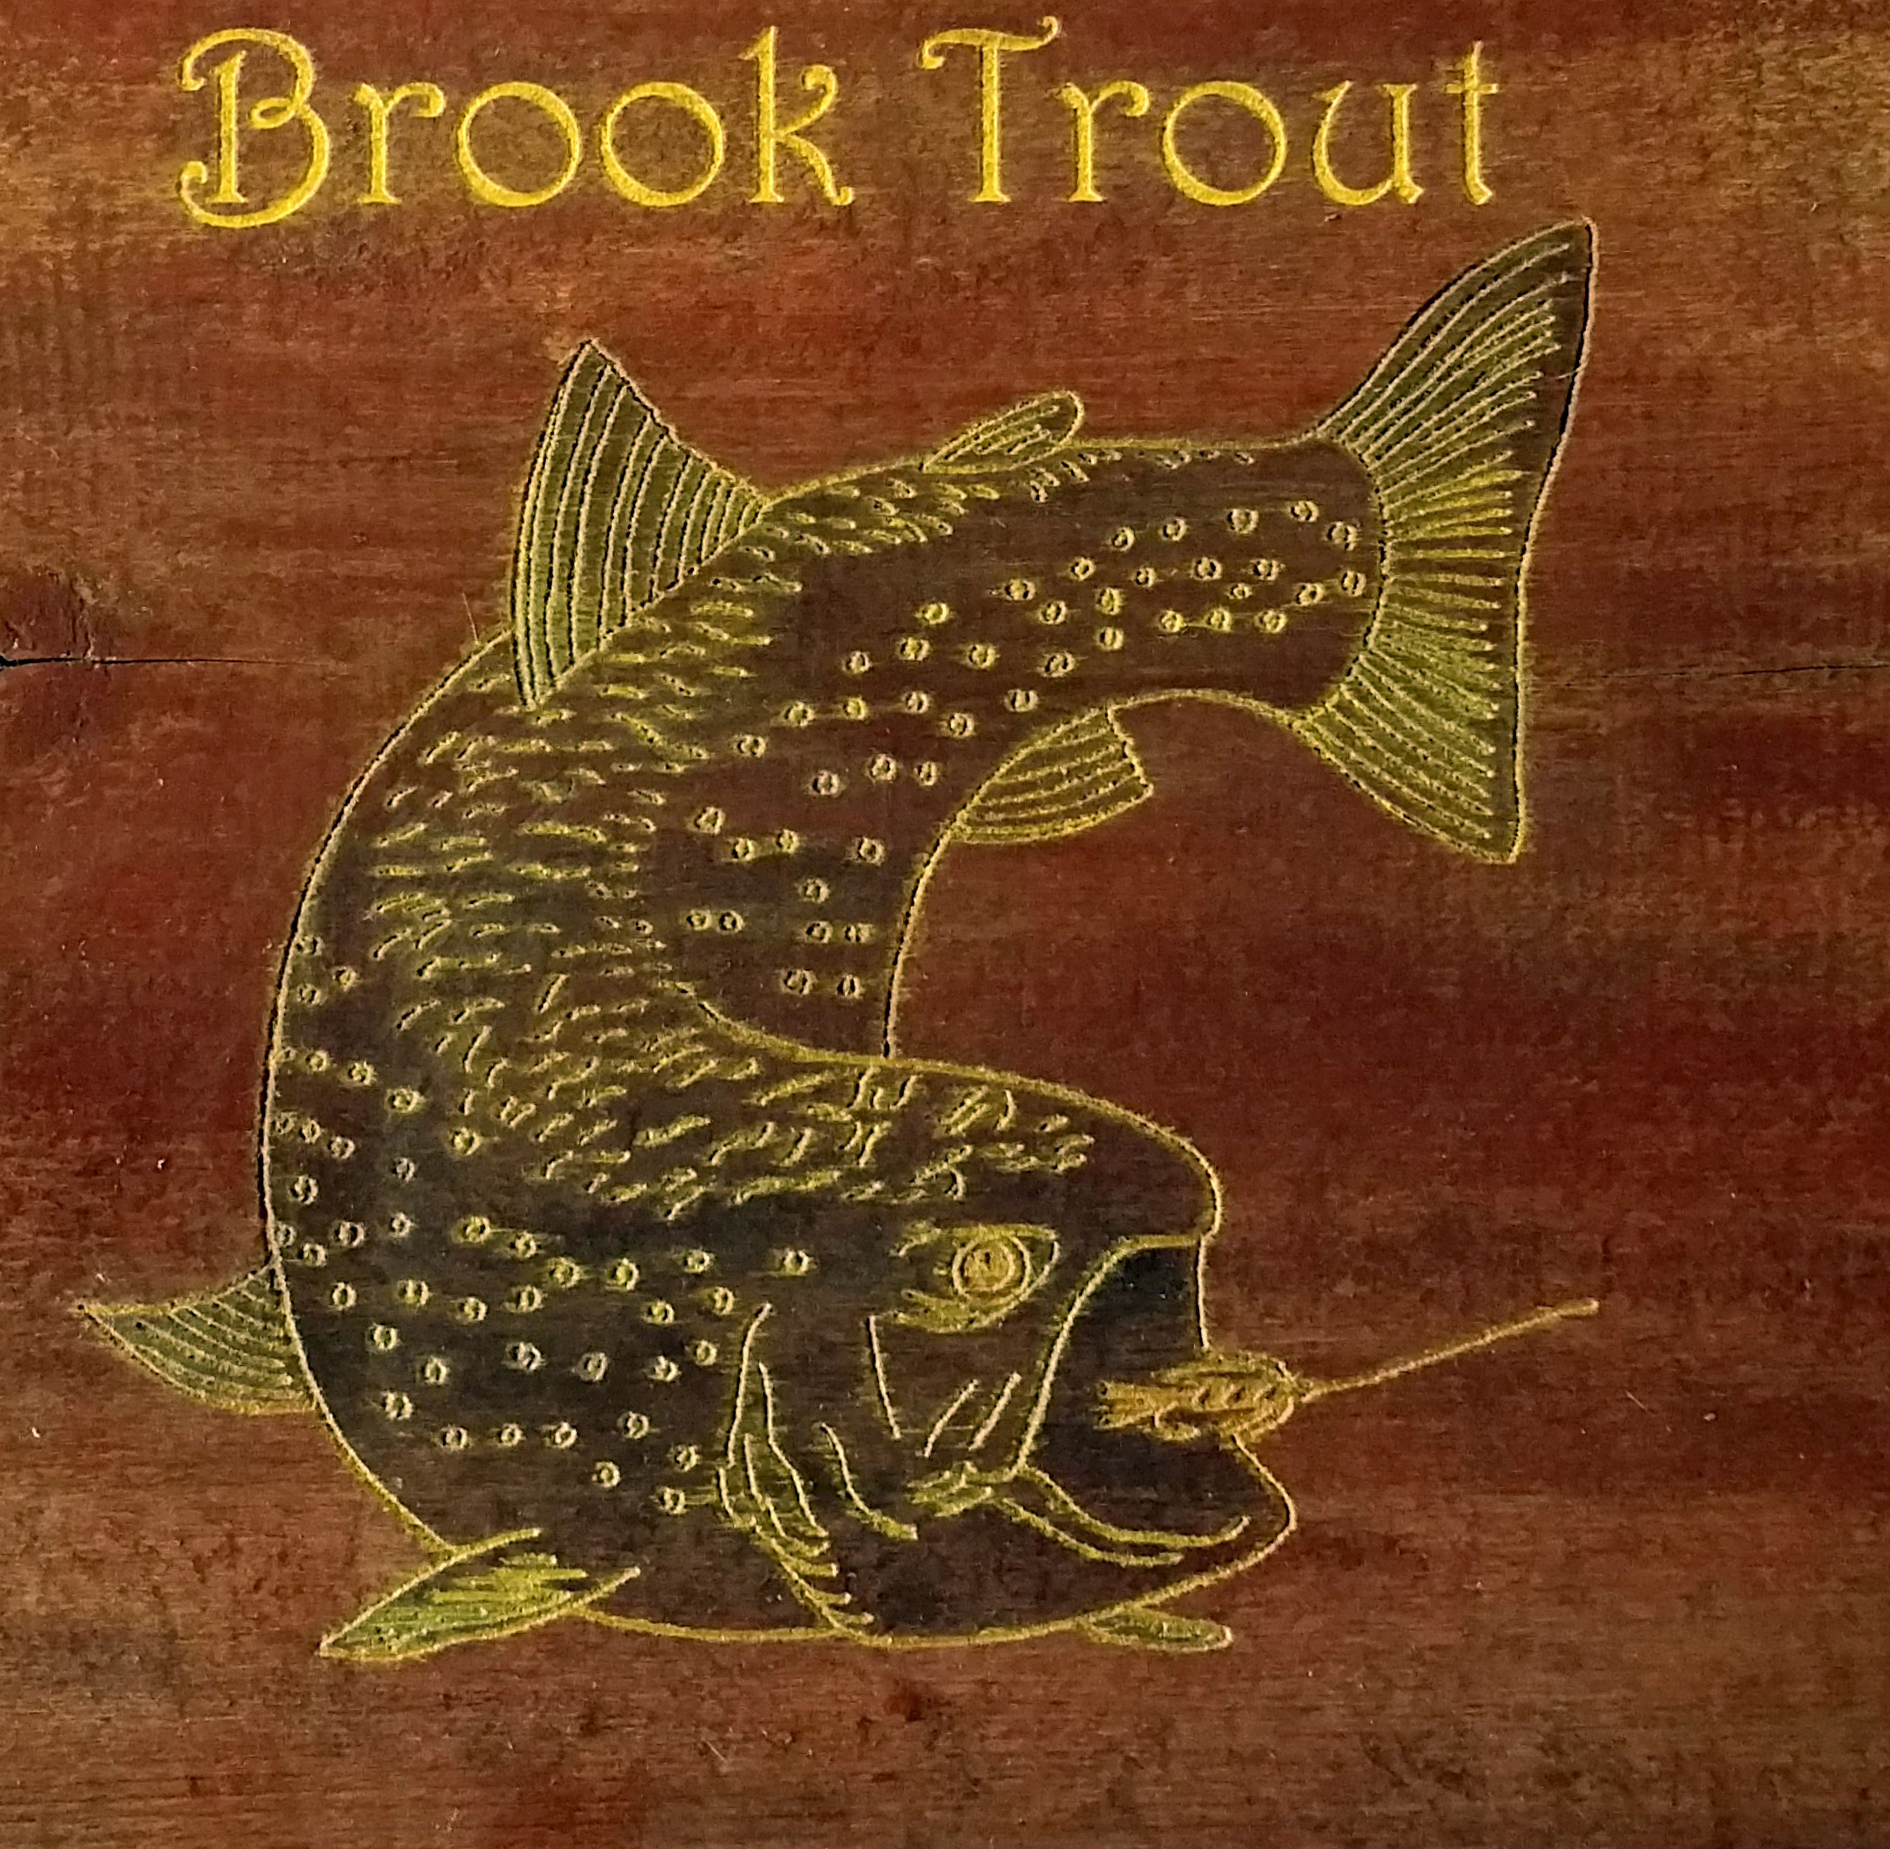 brookie on a 150 year old wood sap bucket cover